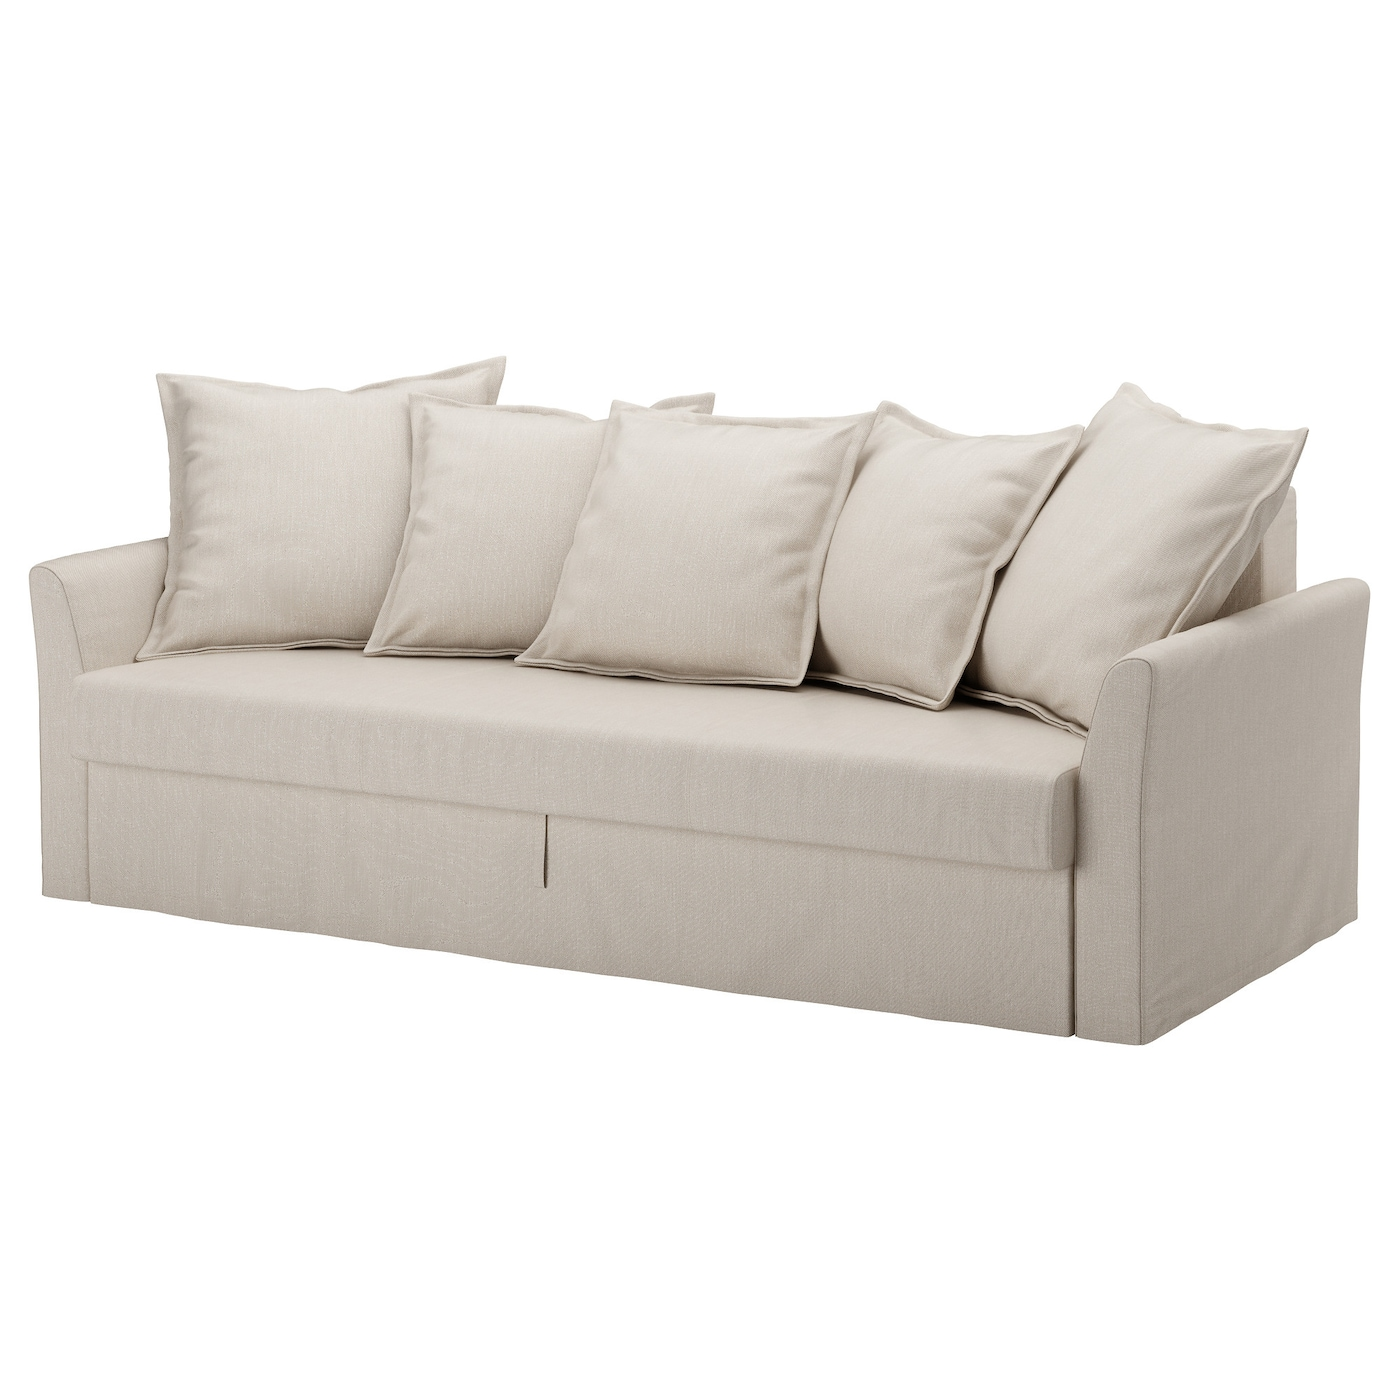 sectional couches walmart space sofa slipcovers slipcover perfect creating beyond linen and waterpr ottoman setting your target for covers bug cover bed furniture couch bath